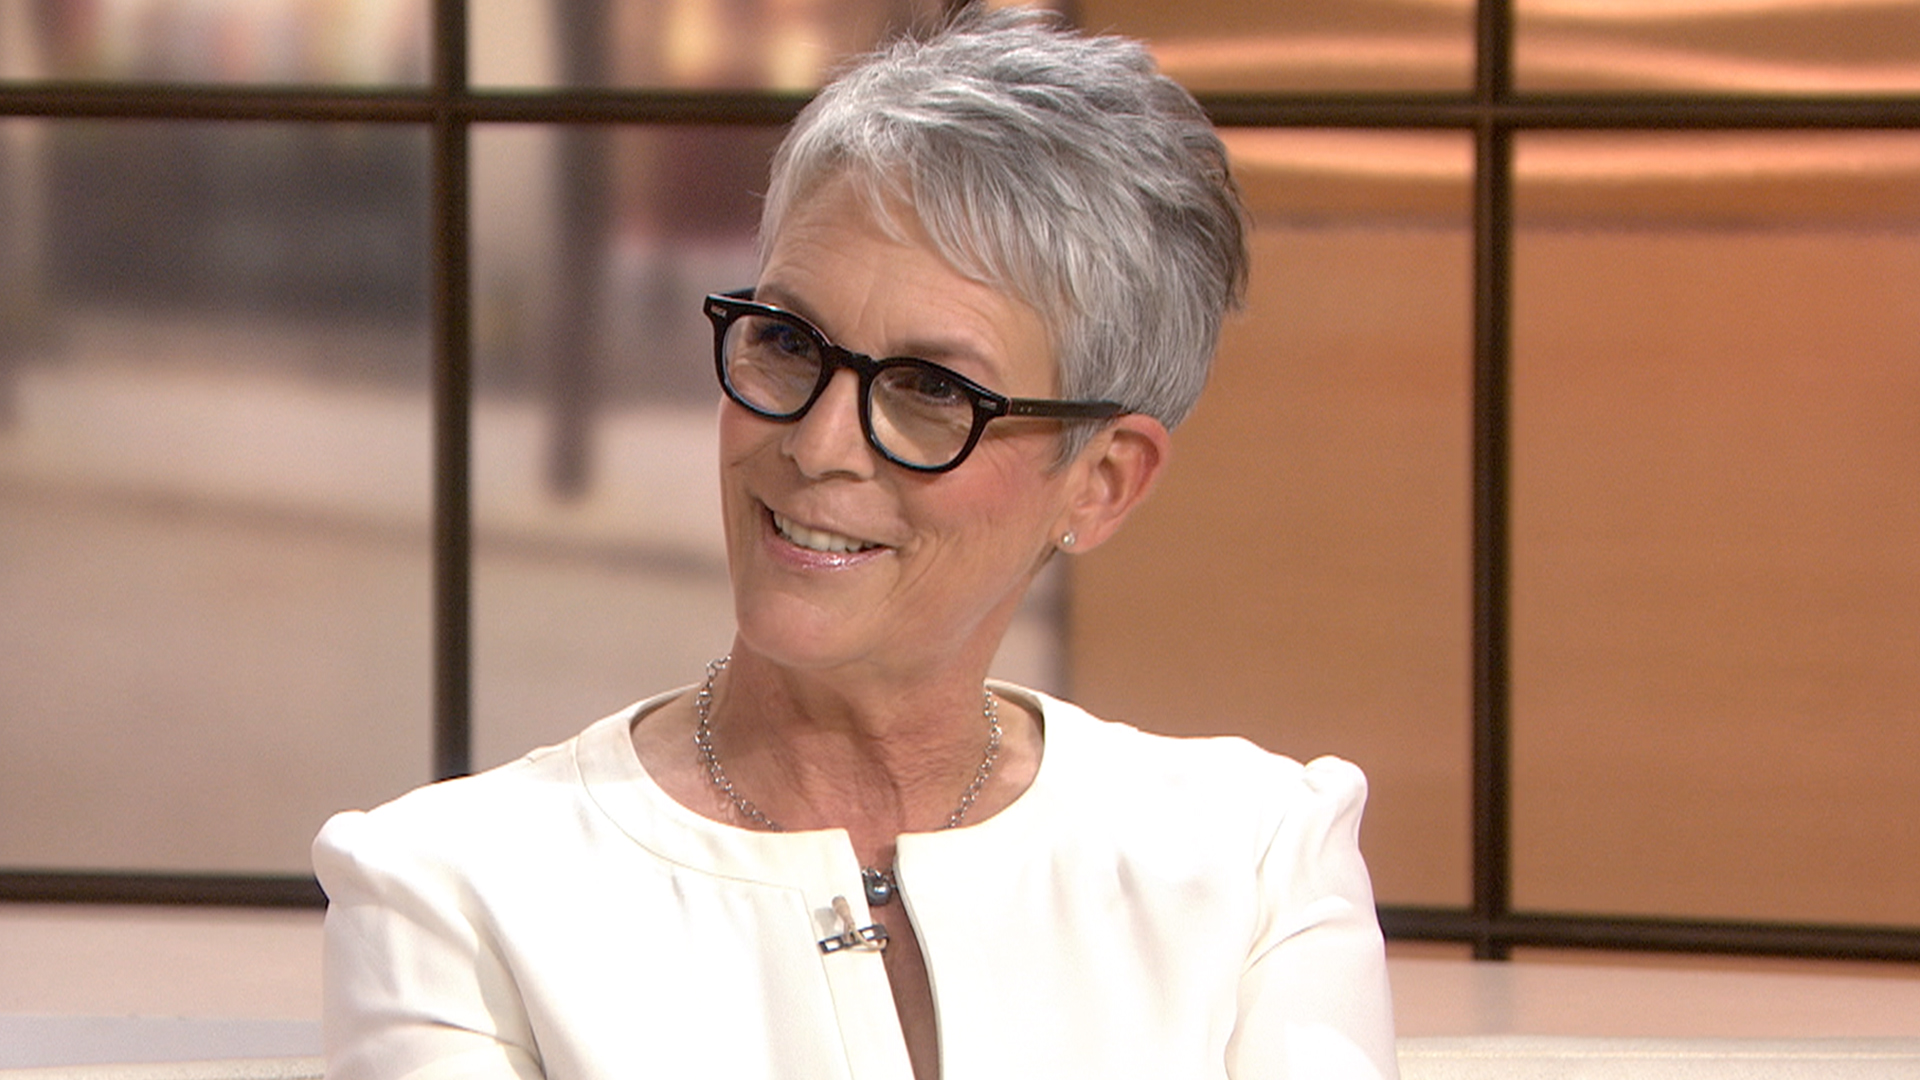 jamie-lee-curtis-today-150922-tease_3cff30375957ae621a83392b40fc6b16